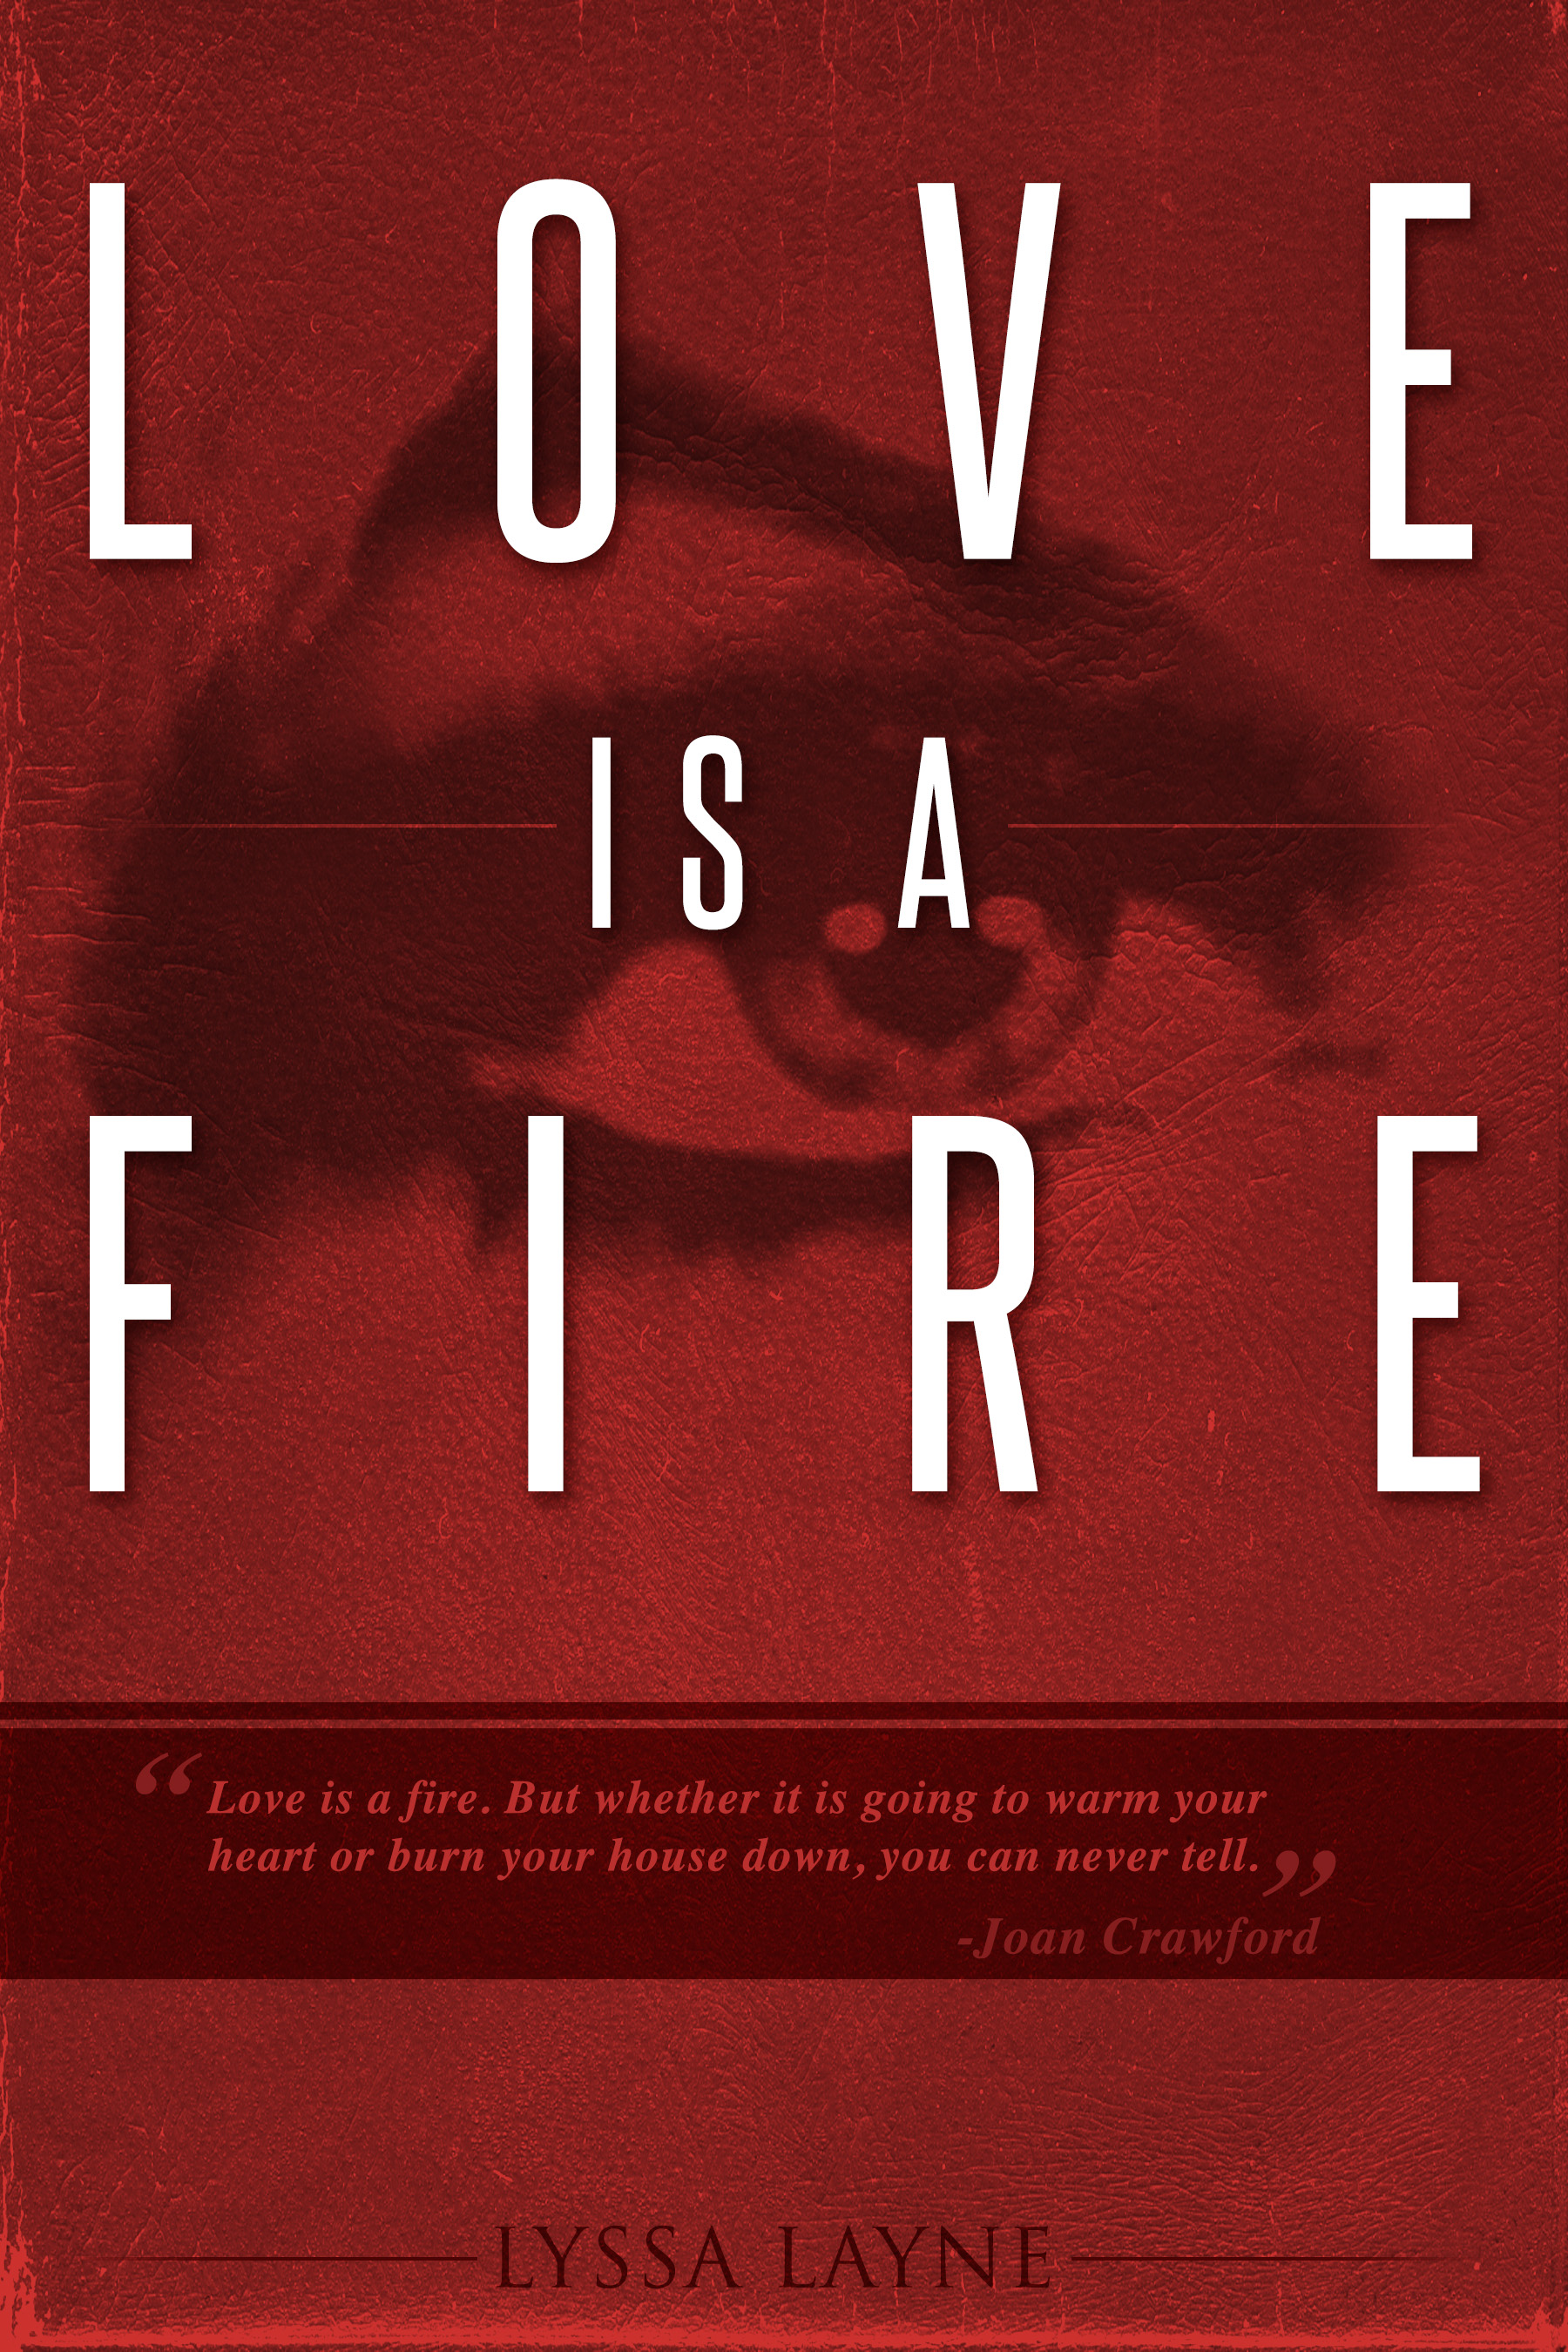 BLOG TOUR PROMO & GIVEAWAY: LOVE IS A FIRE by Lyssa Layne